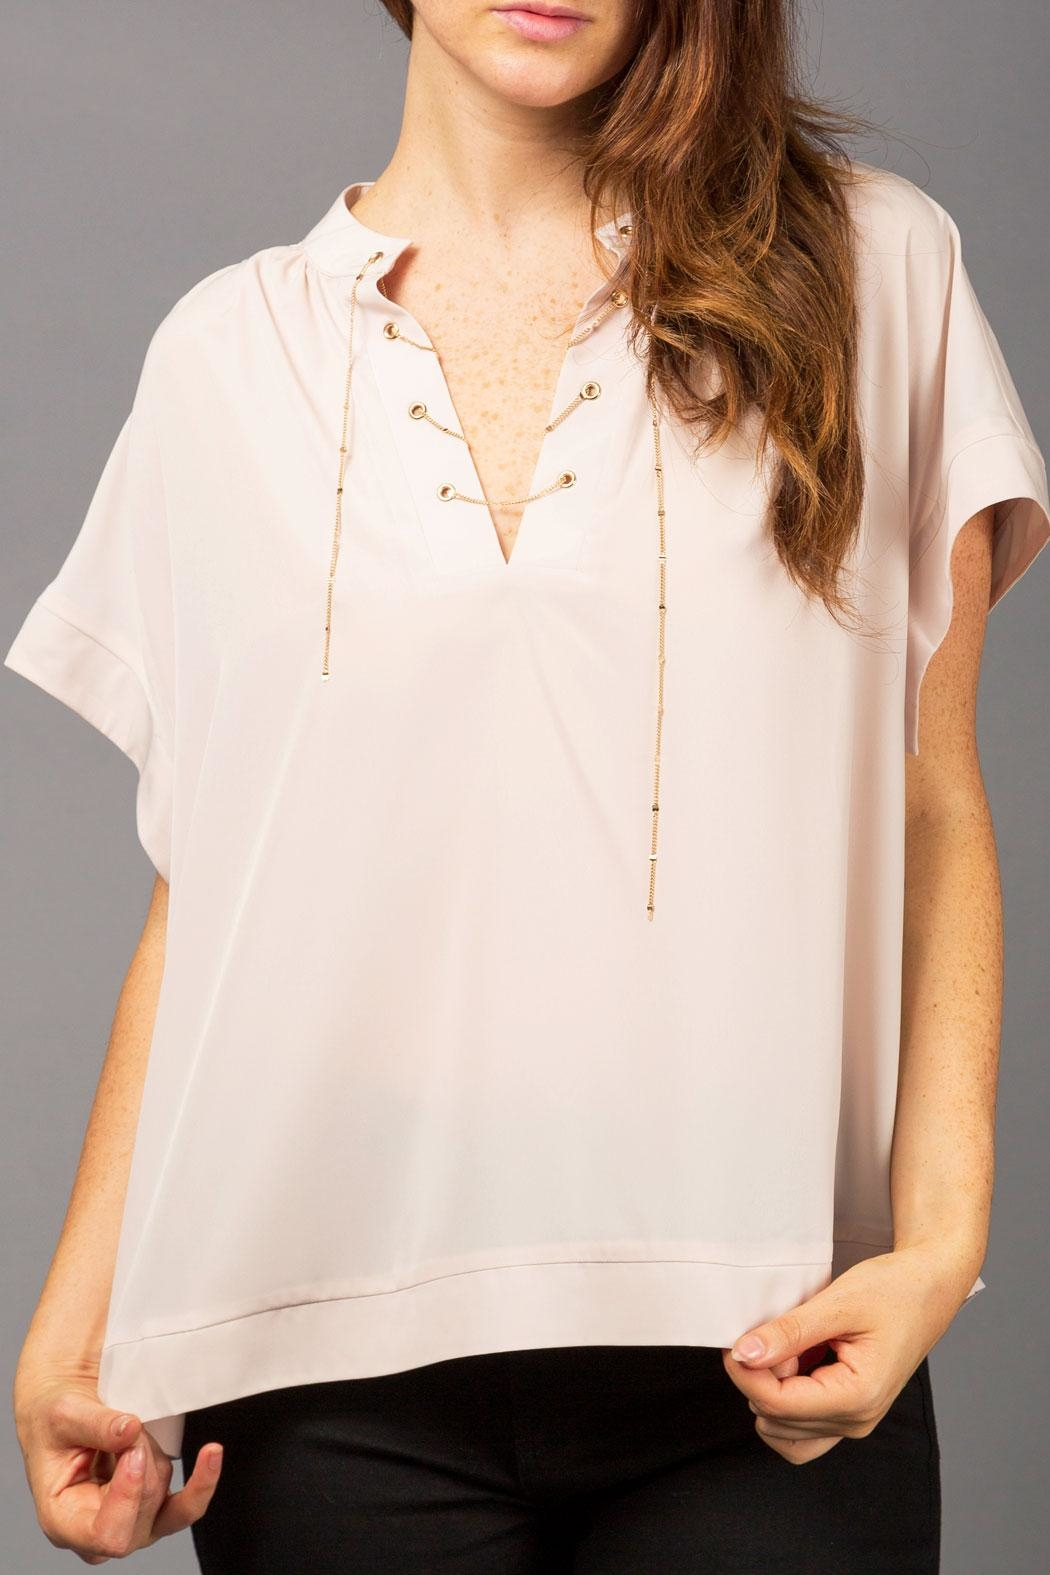 WREN & WILLA Laced-Up Chain Top - Main Image